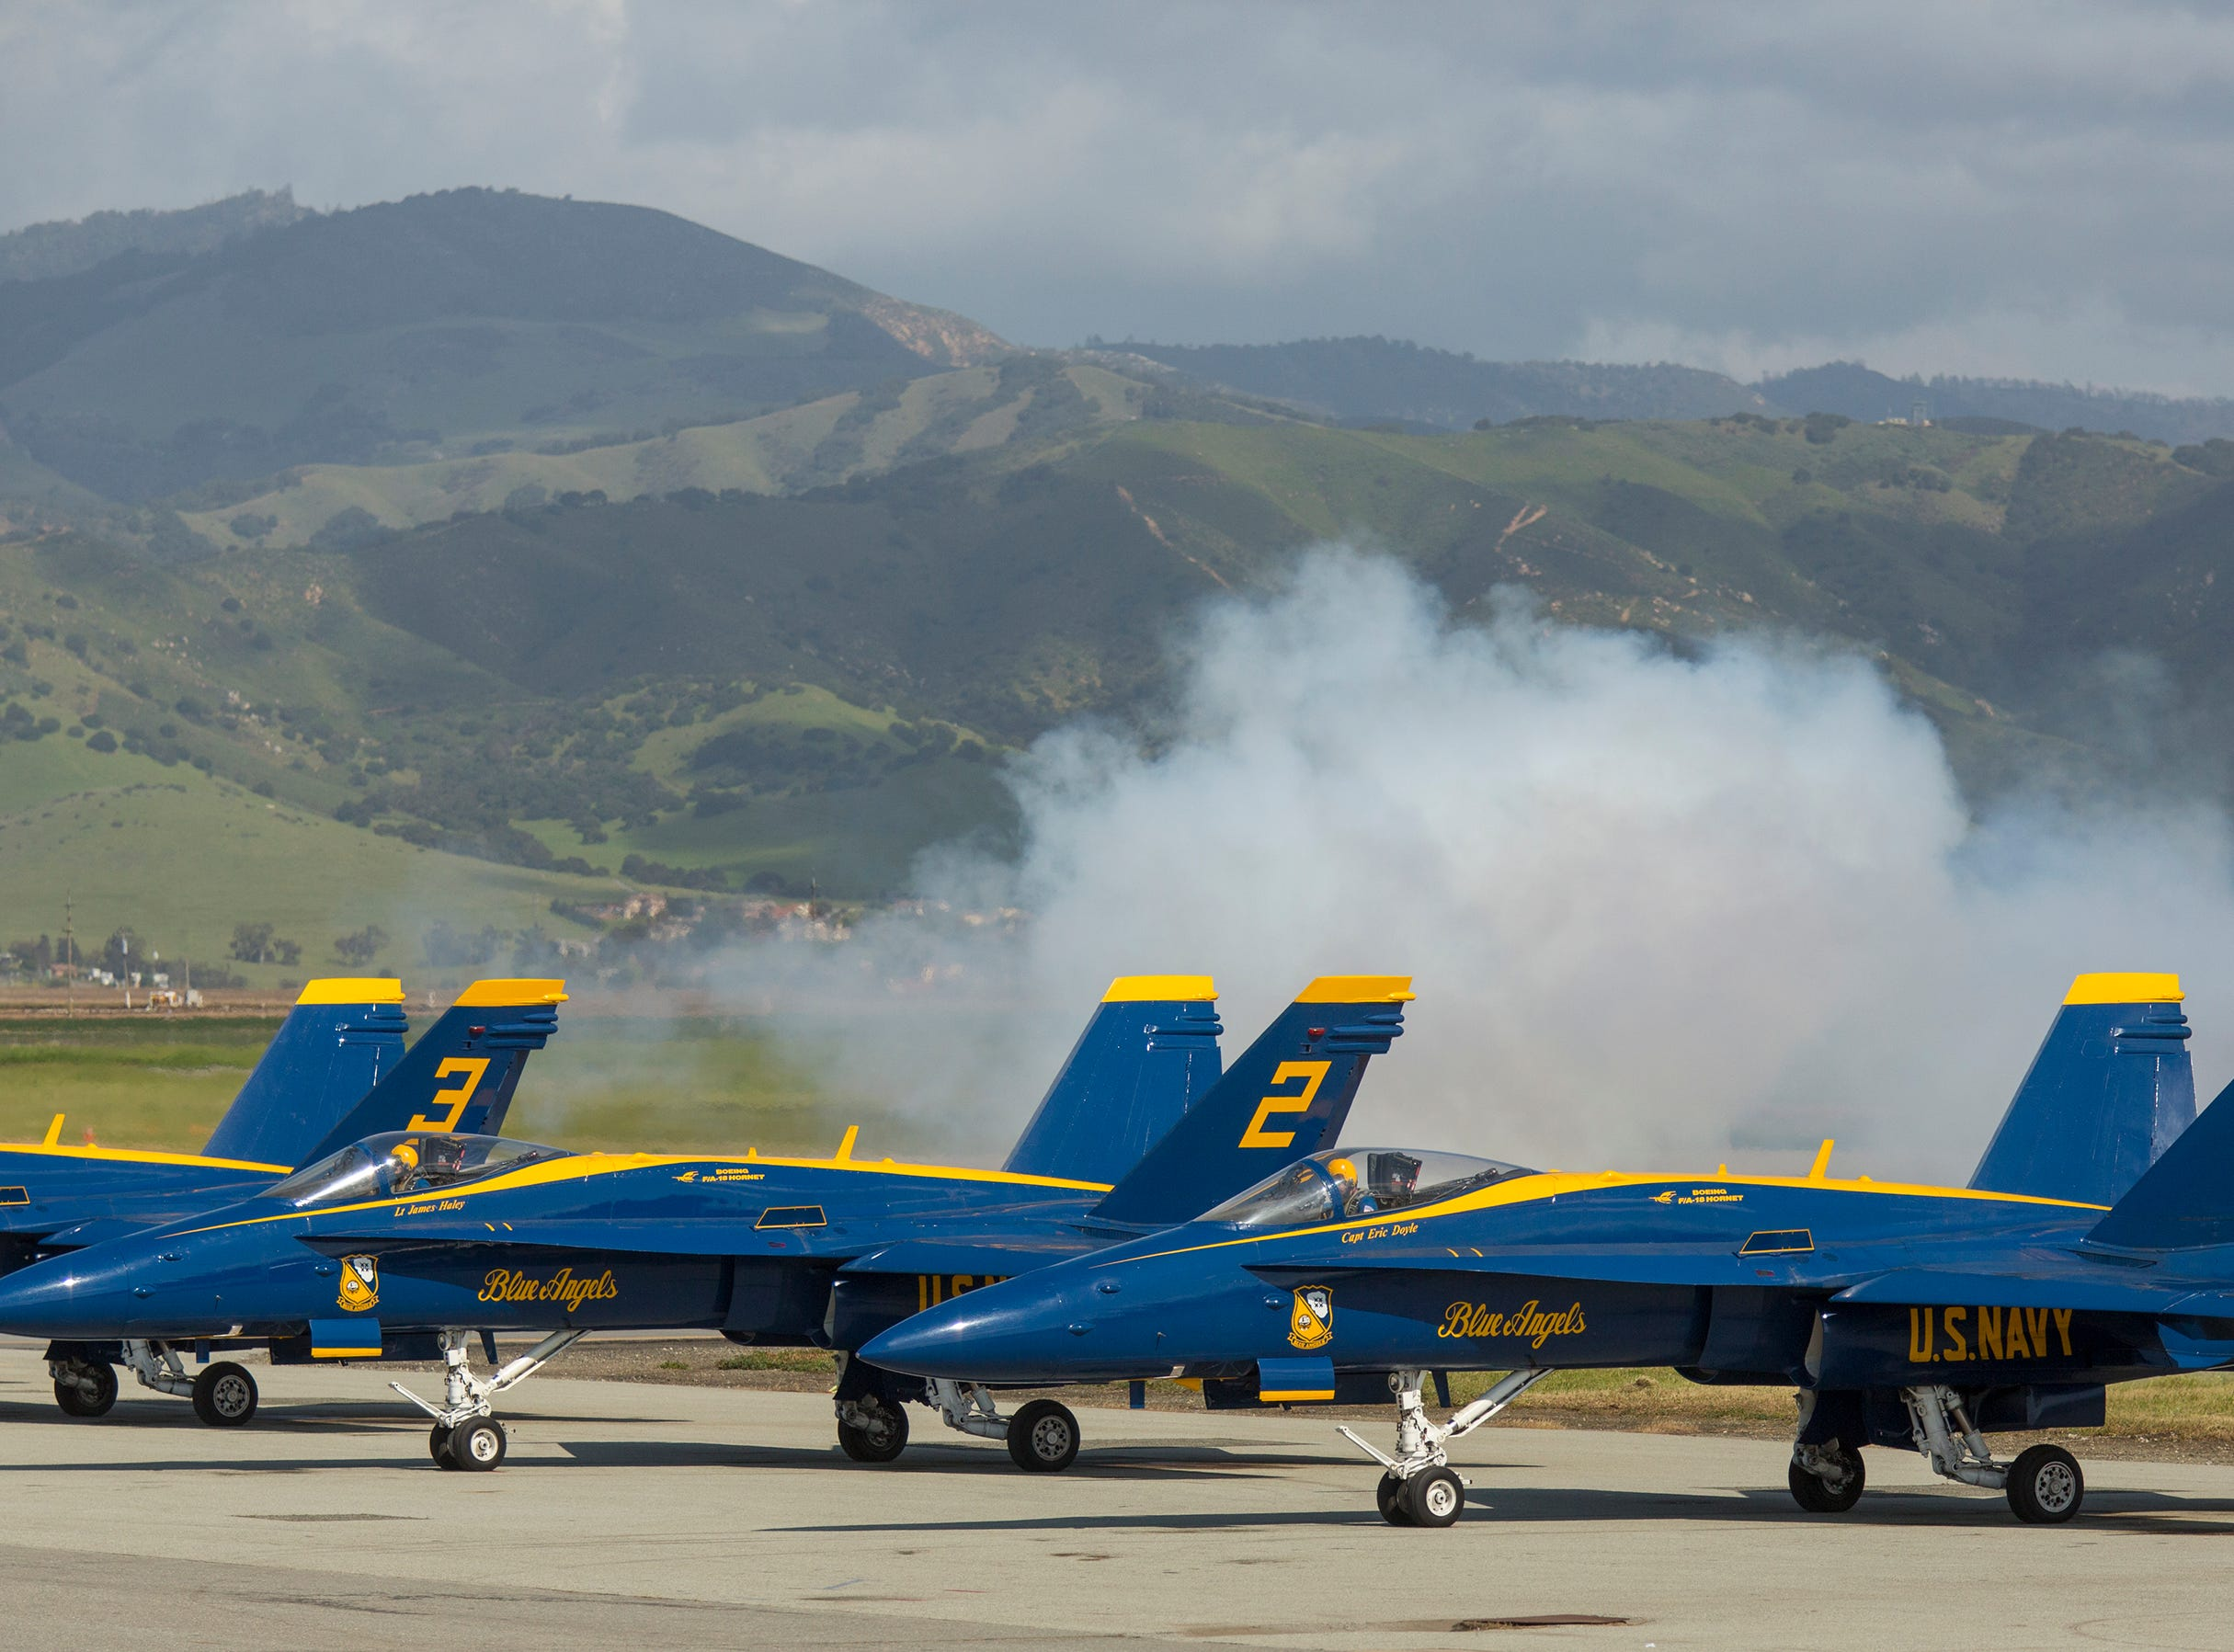 The Blue Angels get ready to takeoff during the California International Airshow Salinas at the Salinas Airport on March 23, 2019. (Photo by David Royal)